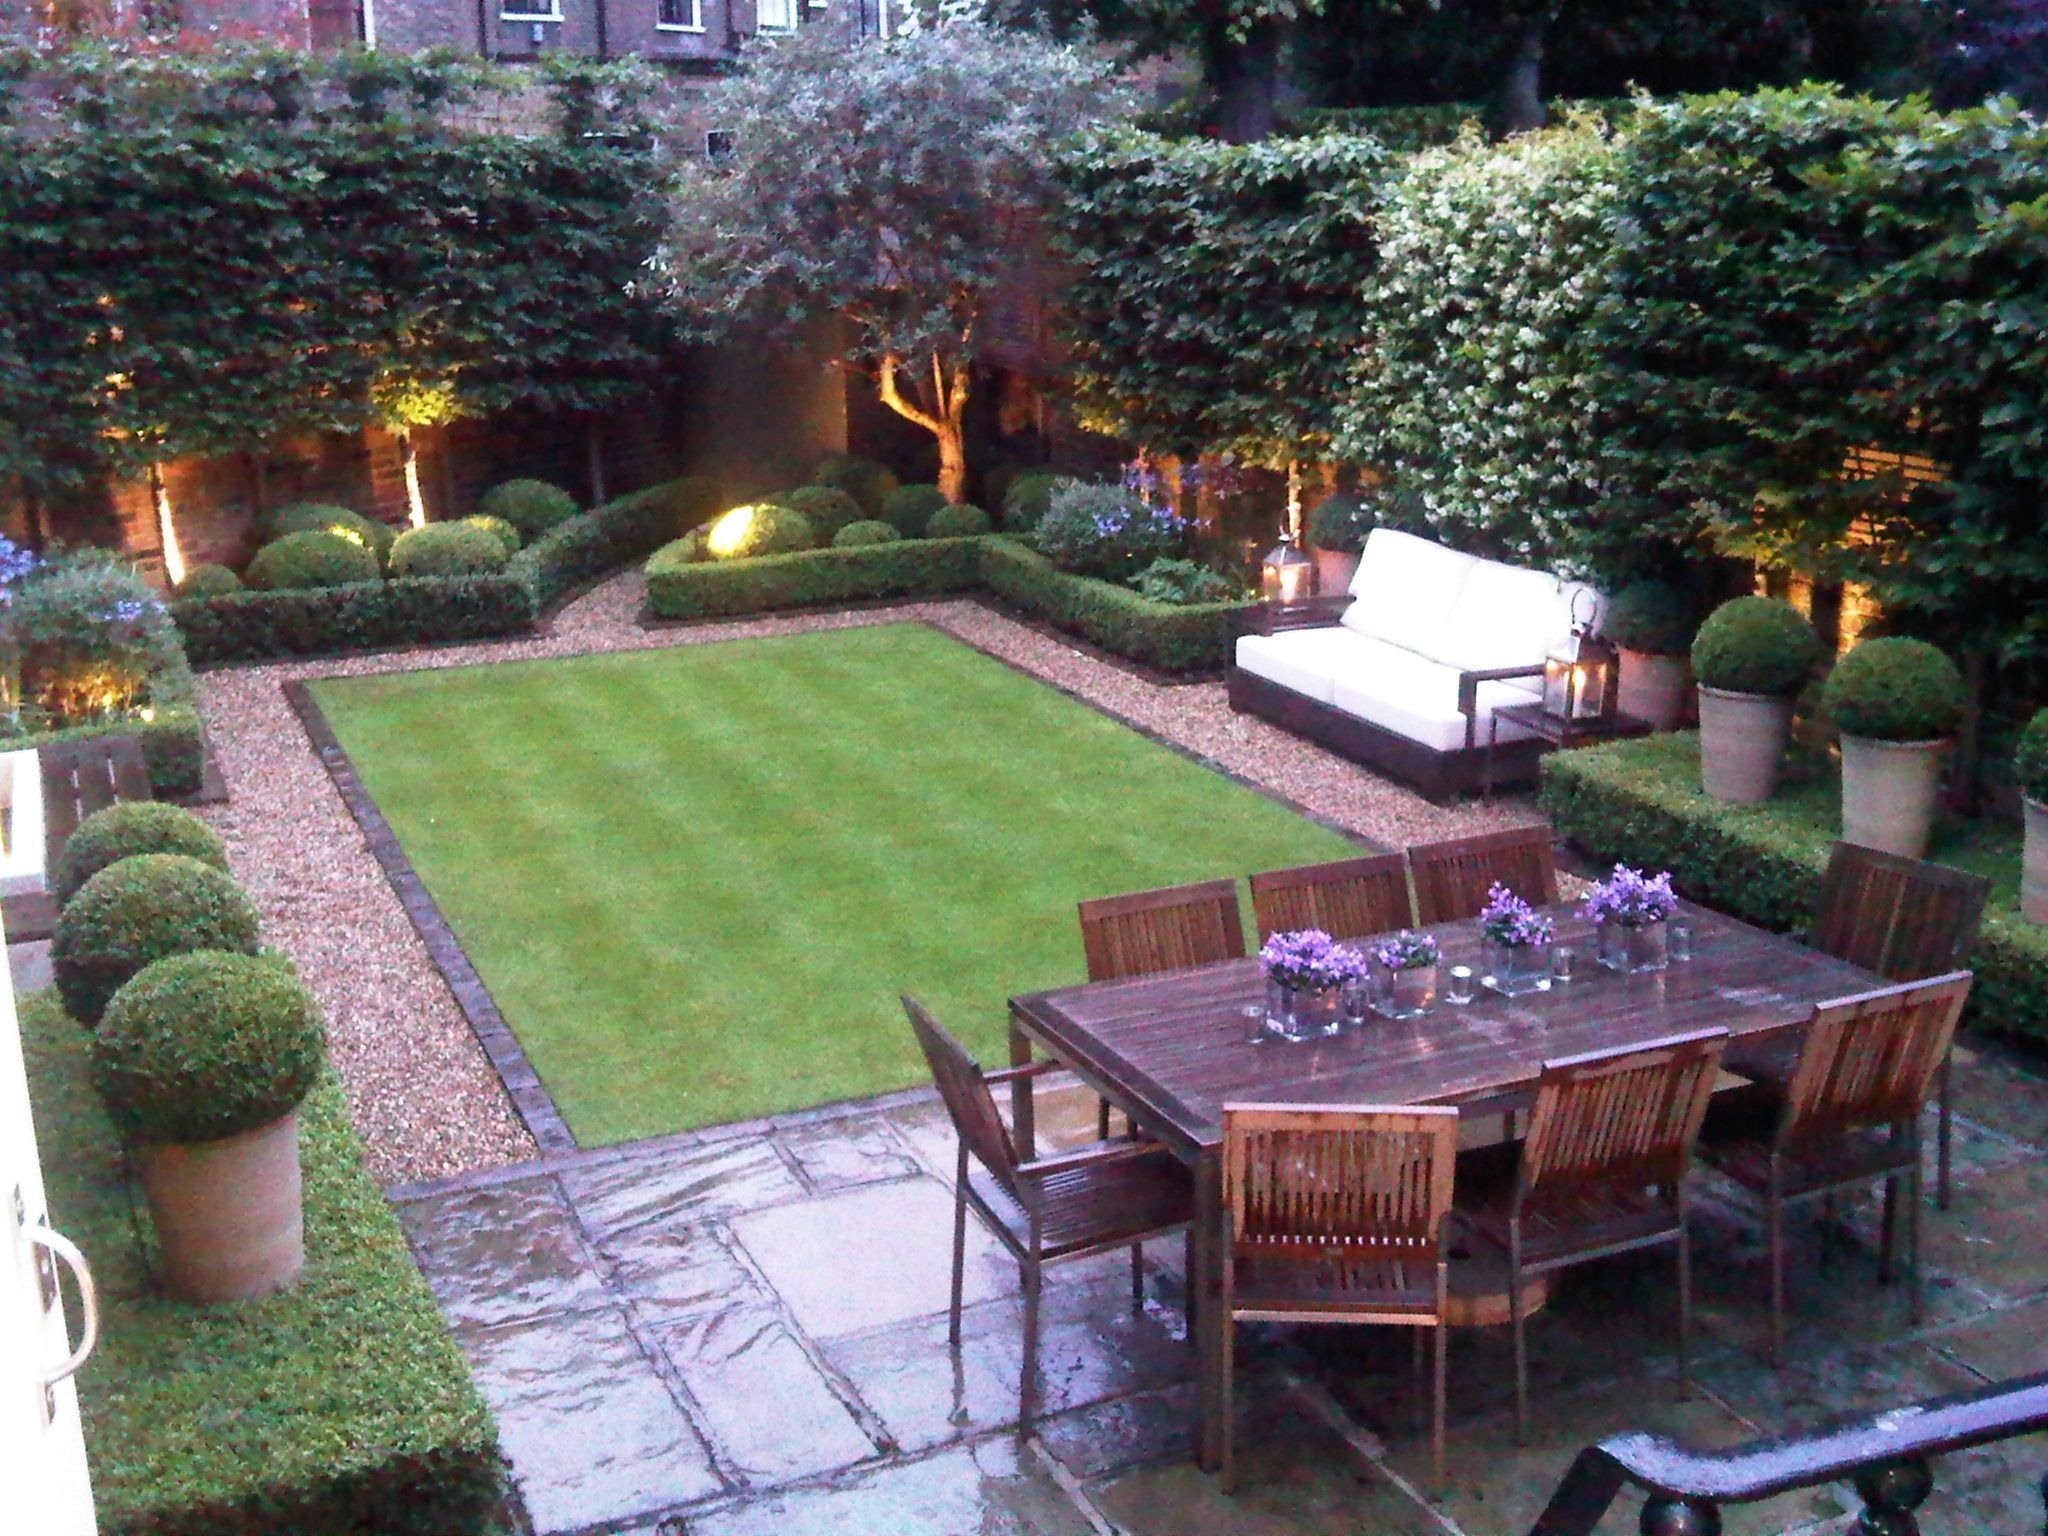 laurens garden inspiration small garden designgarden design ideassmall - Small Yard Design Ideas